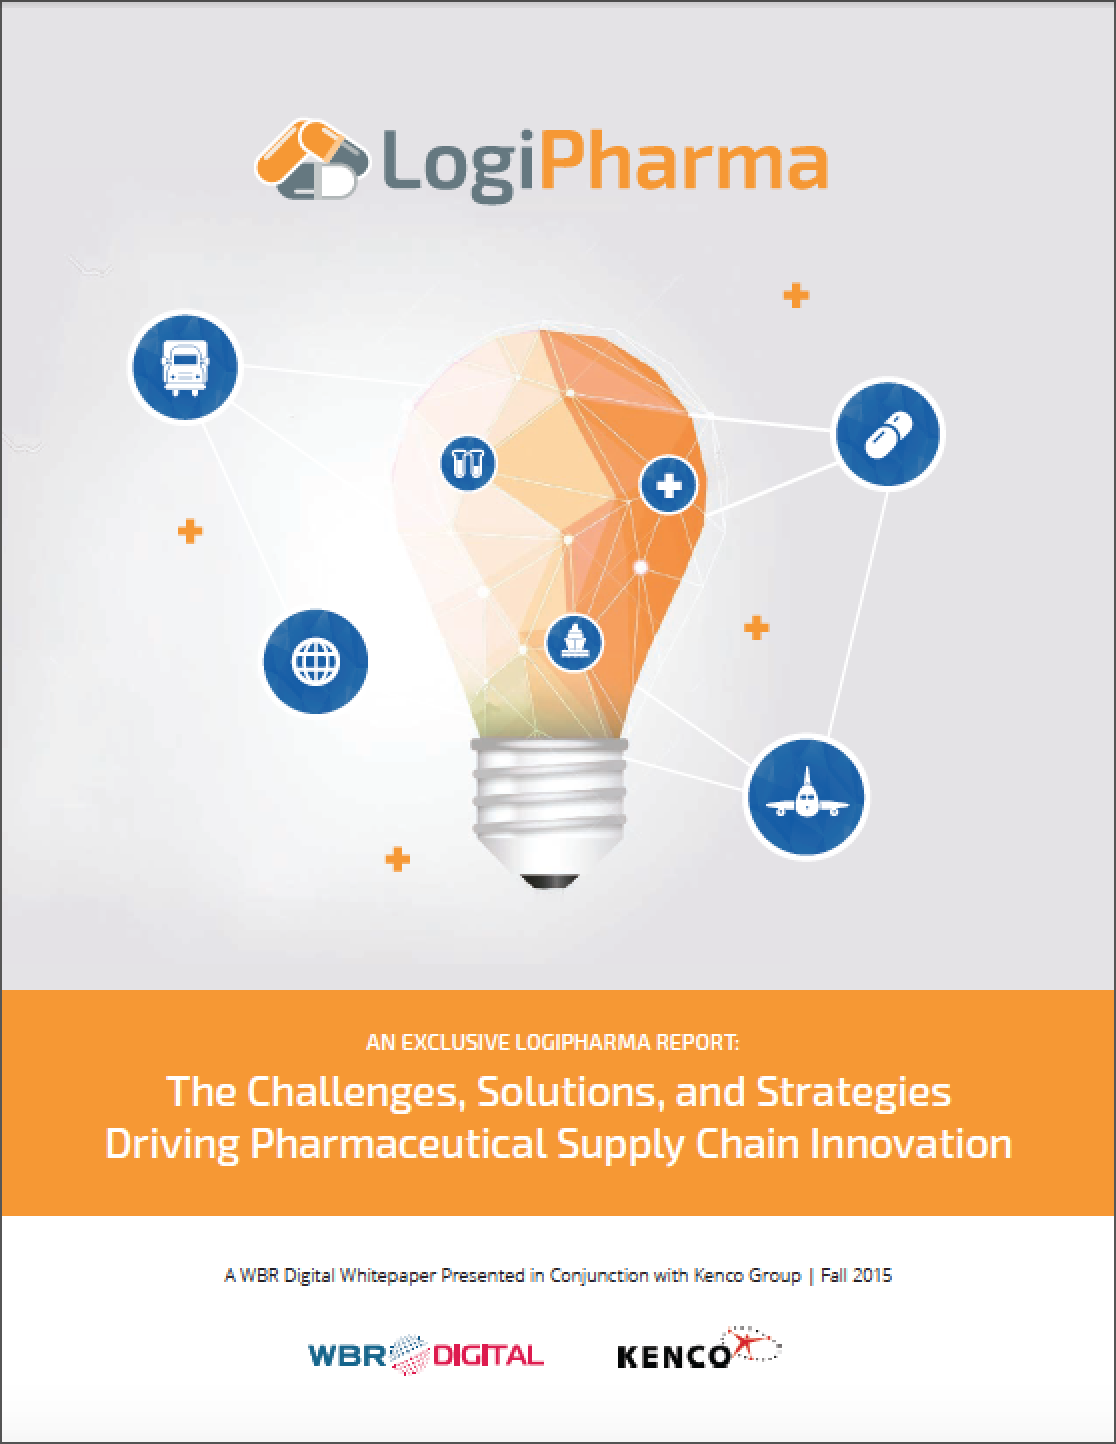 The_Challenges_Solutions_and_Strategies_Driving_Supply_Chain_Innovation.png